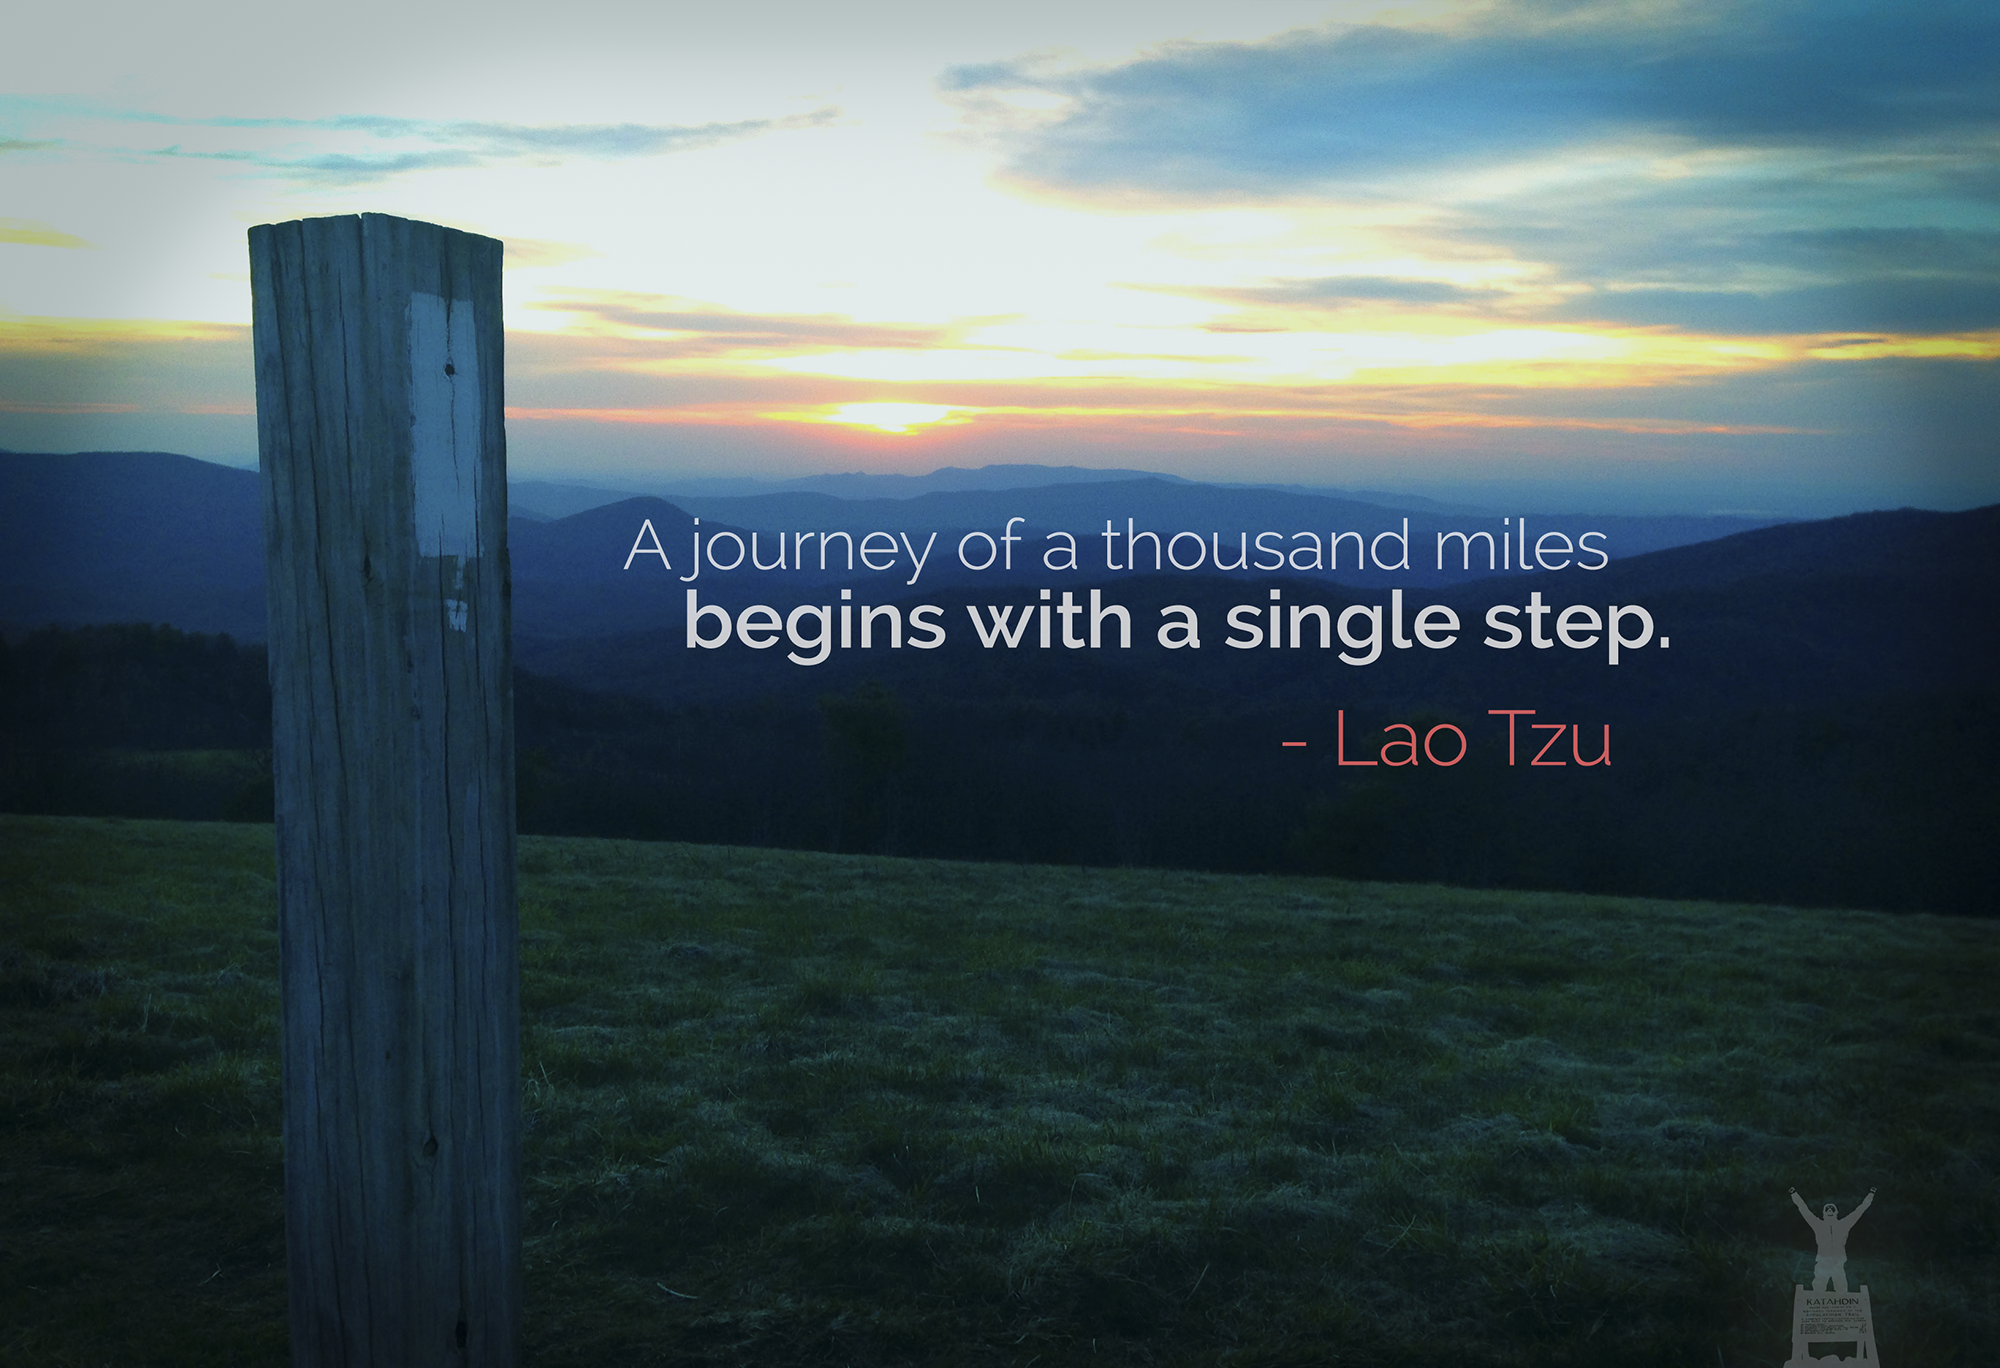 lao tzu quote - journey of thousand miles small